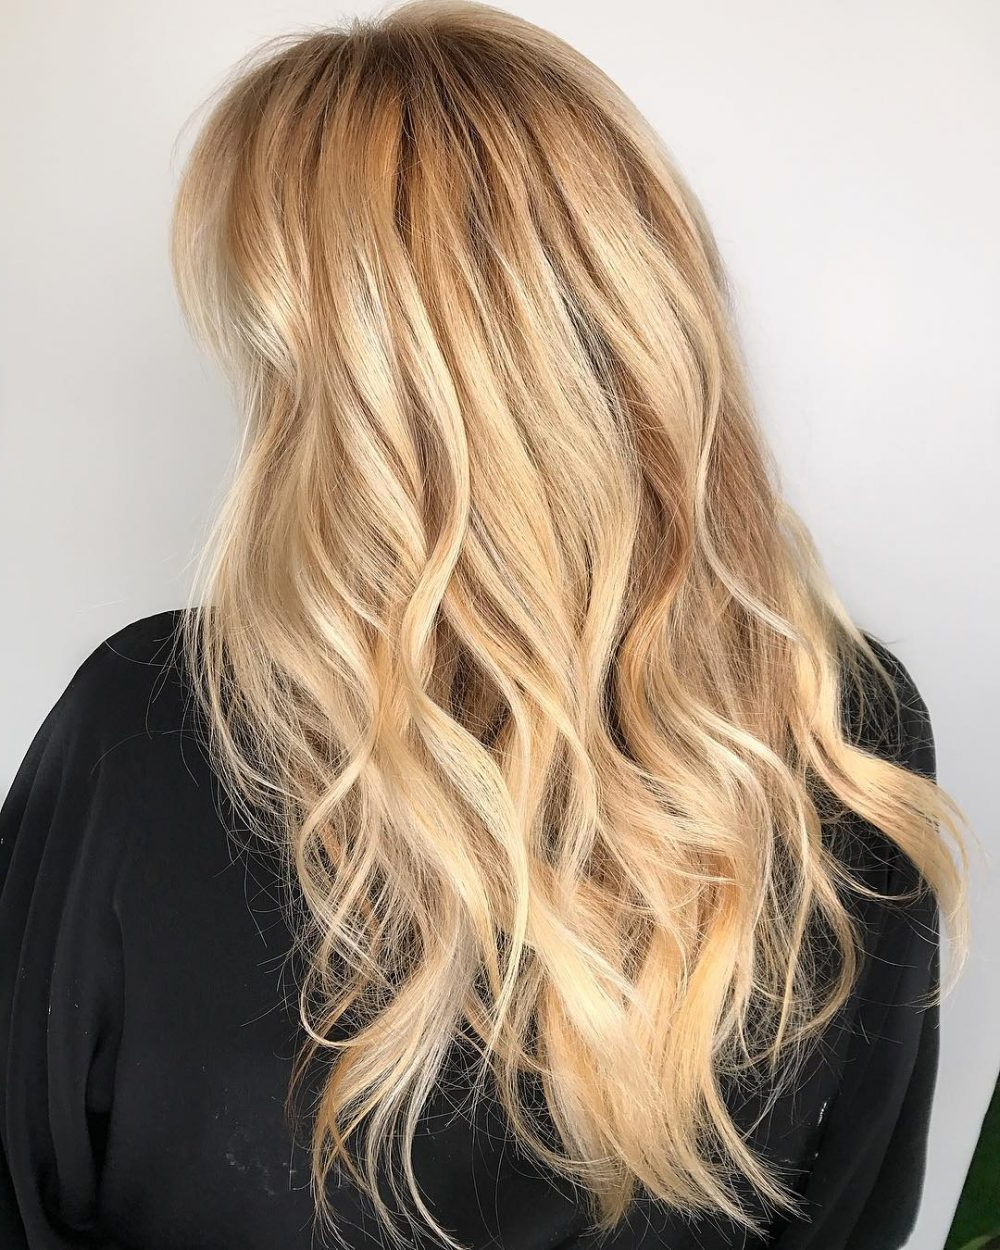 Top 30 Long Blonde Hair Ideas Of 2019 With 2019 Brown Blonde Hair With Long Layers Hairstyles (View 15 of 20)